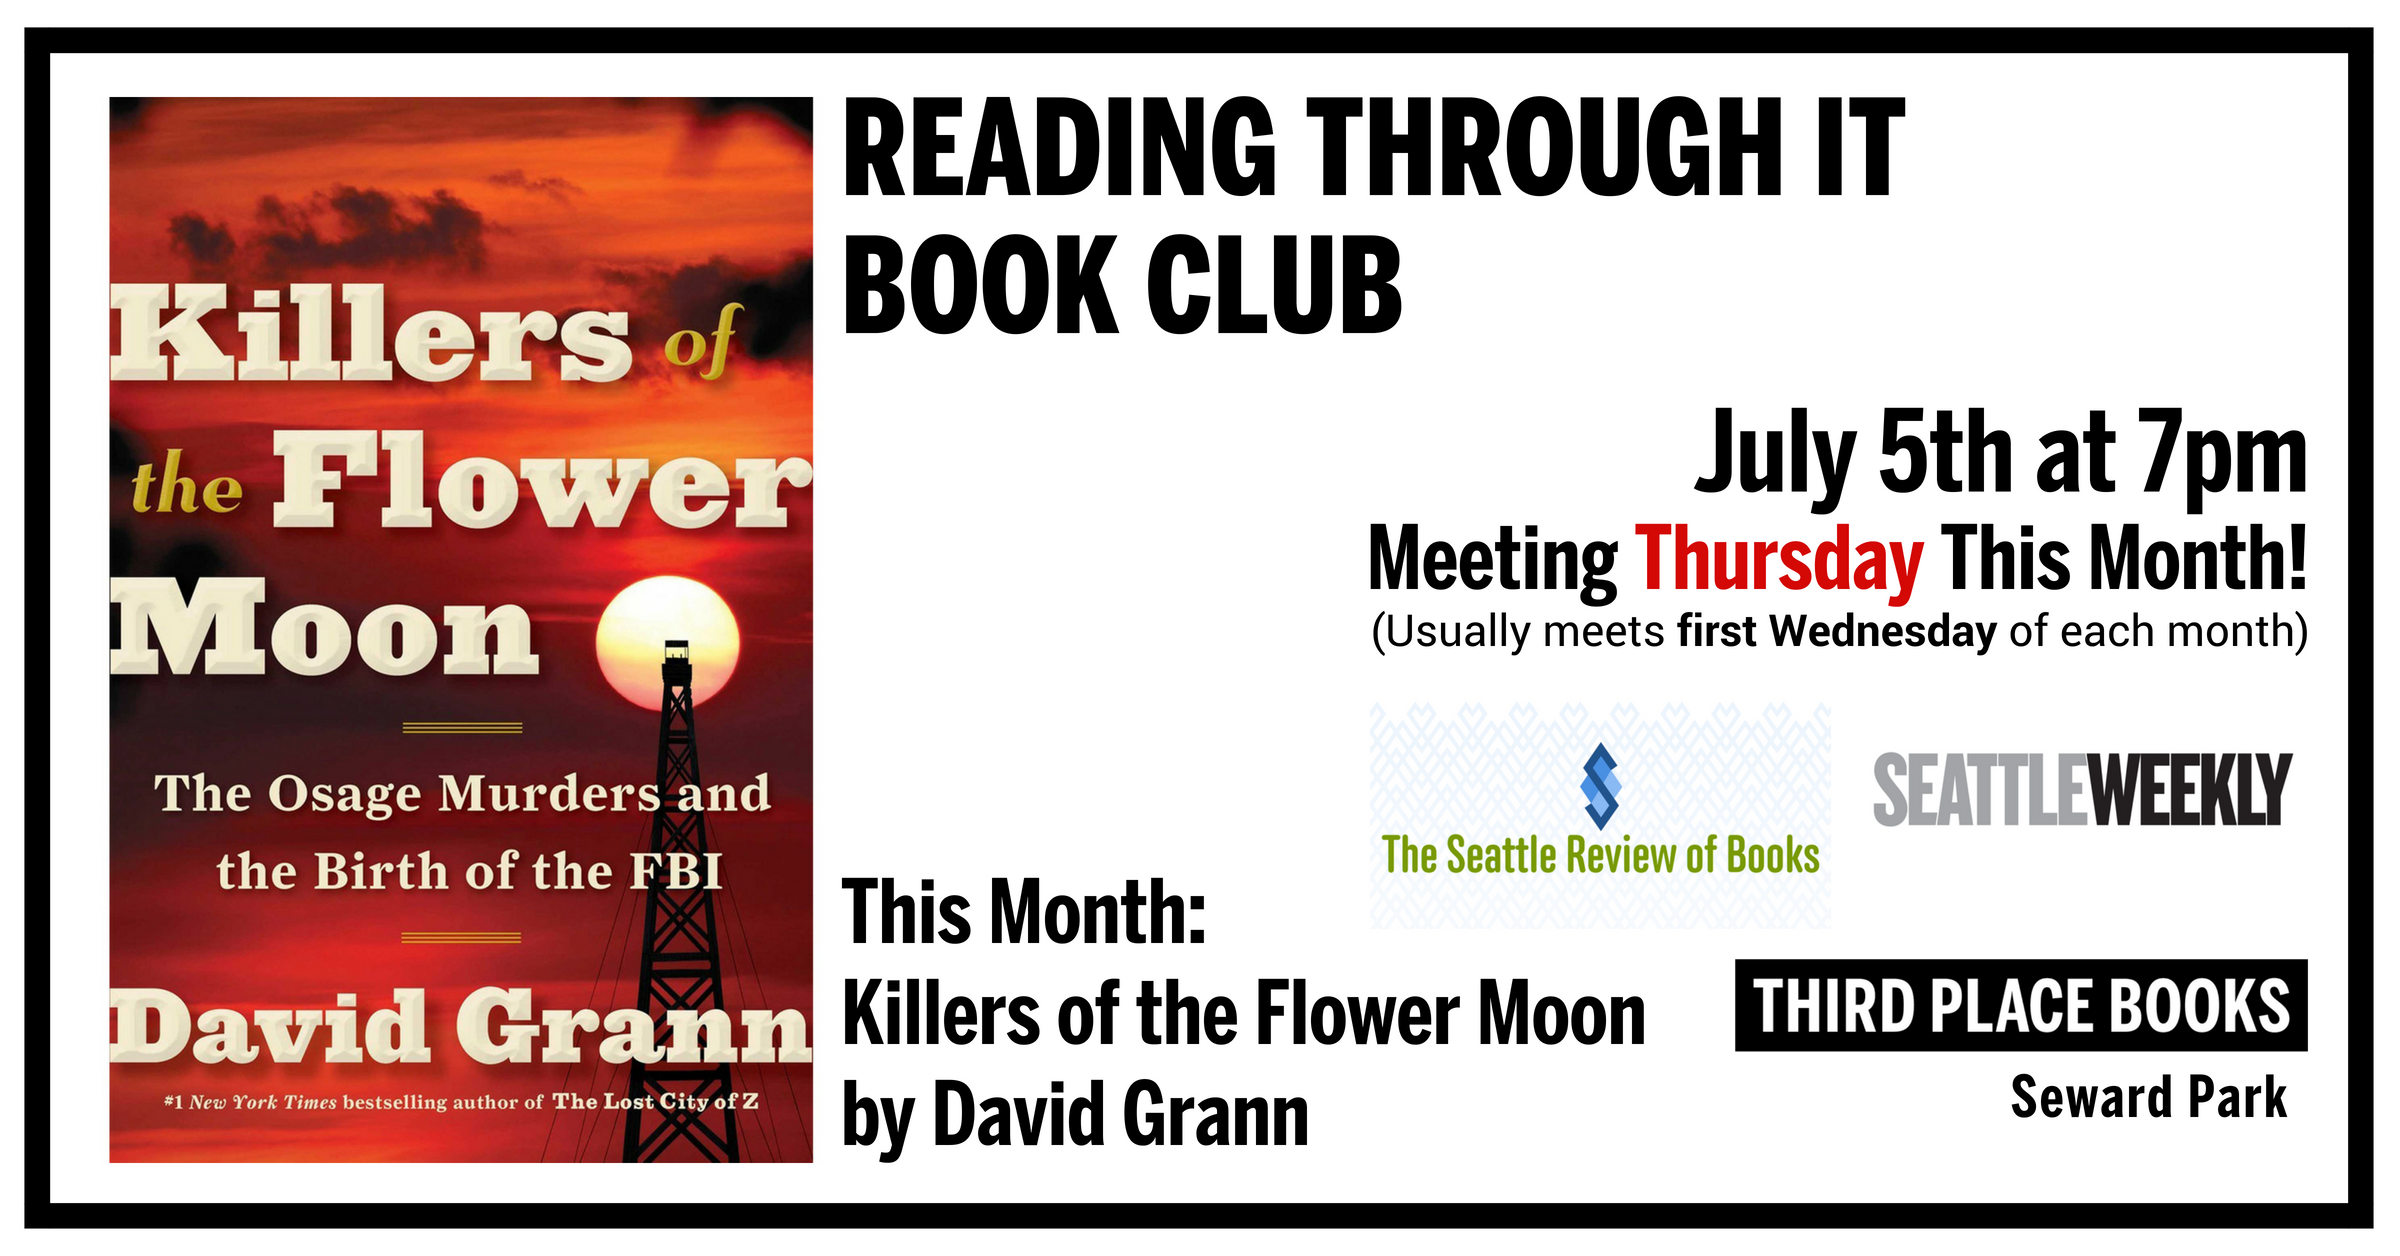 Reading Through It Book Club reading Killers of the Flower Moon on THURSDAY, July 5th at 7pm